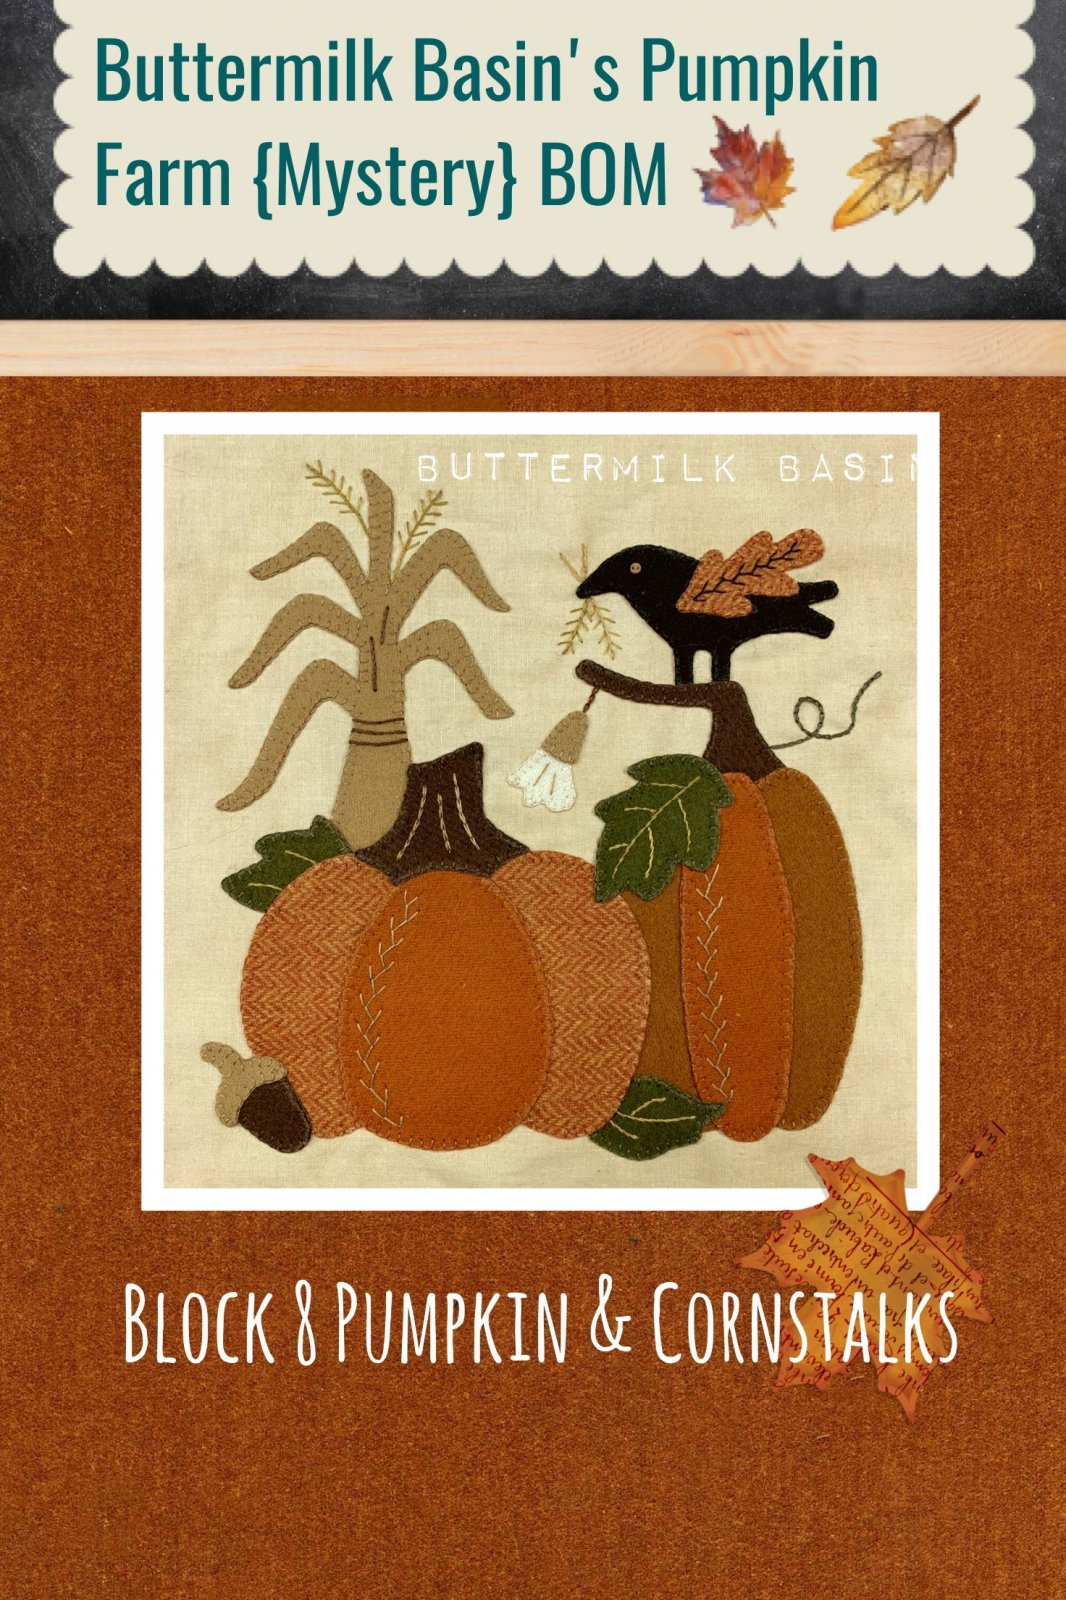 Buttermilk Basin's Pumpkin Farm {Mystery} BOM, Block 8 Kit and Pattern